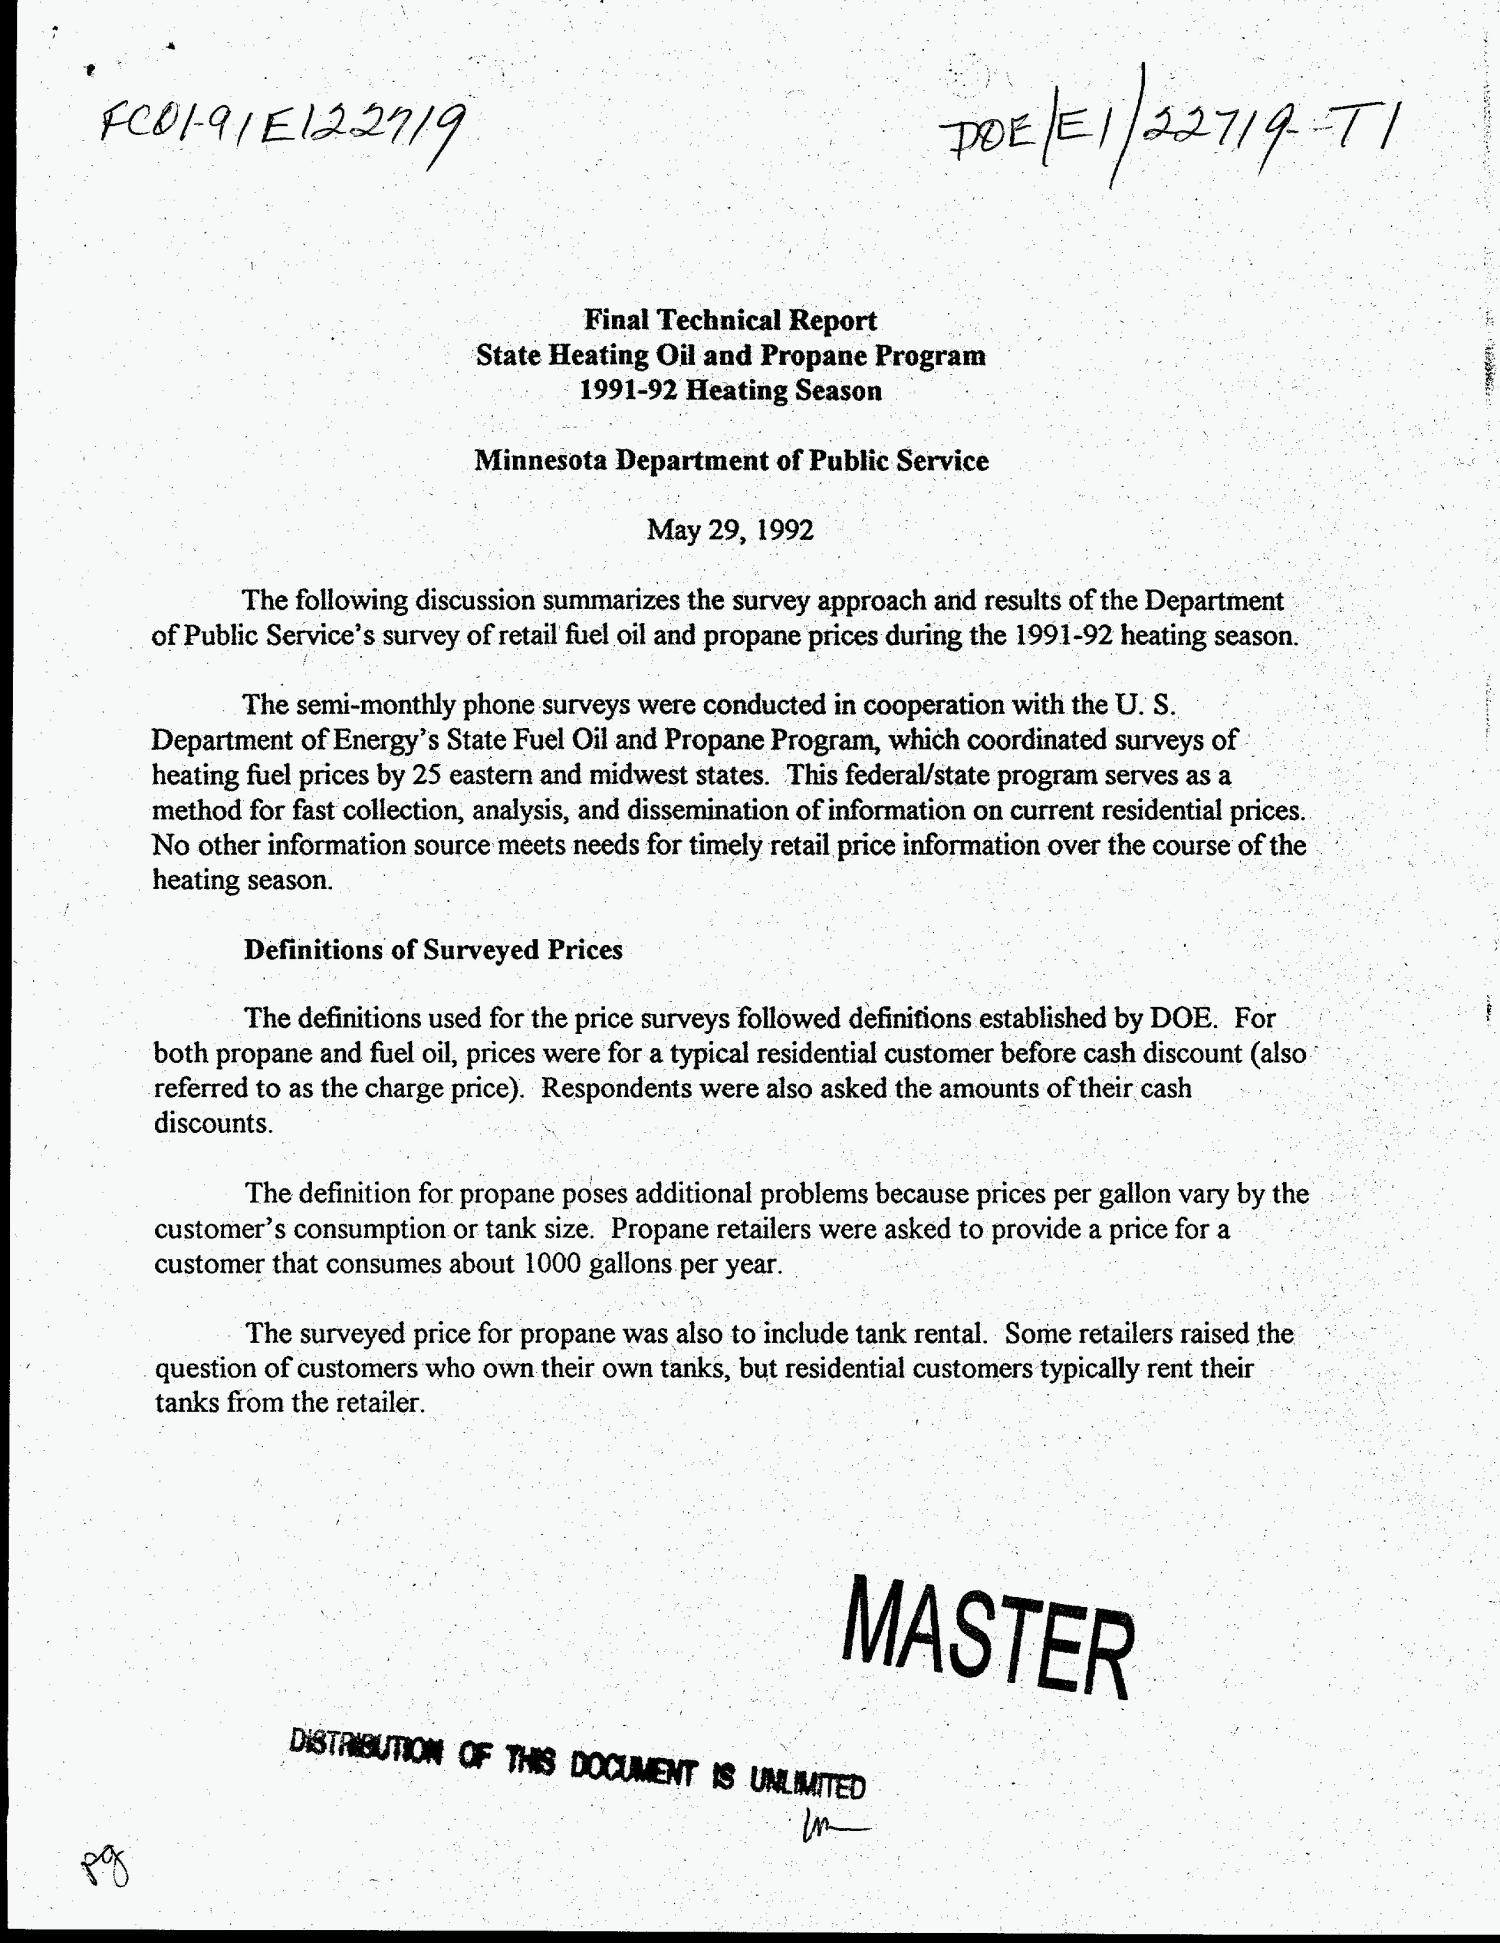 State heating oil and propane program: Final technical report, 1991-92 heating season, Minnesota Department of Public Service                                                                                                      [Sequence #]: 1 of 7